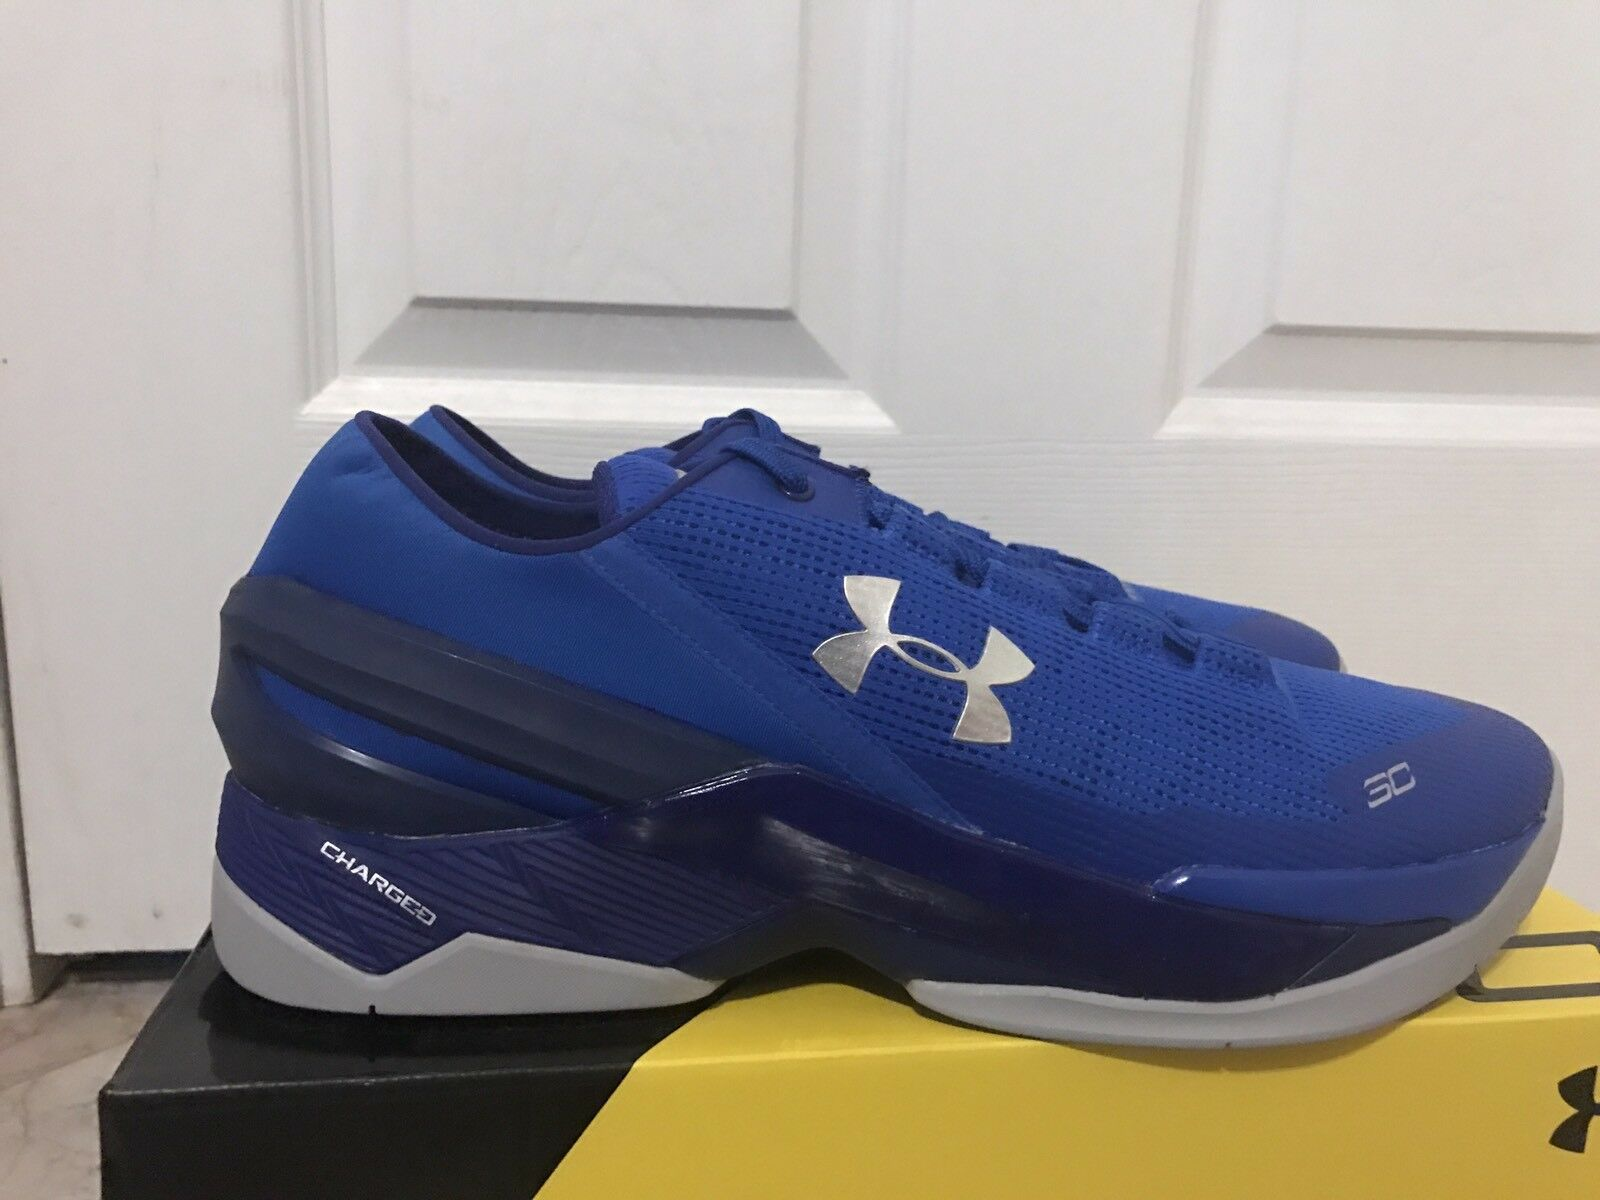 ca8c79a8 Under Armour Men's Curry 2 Low Basketball Shoes for sale online | eBay